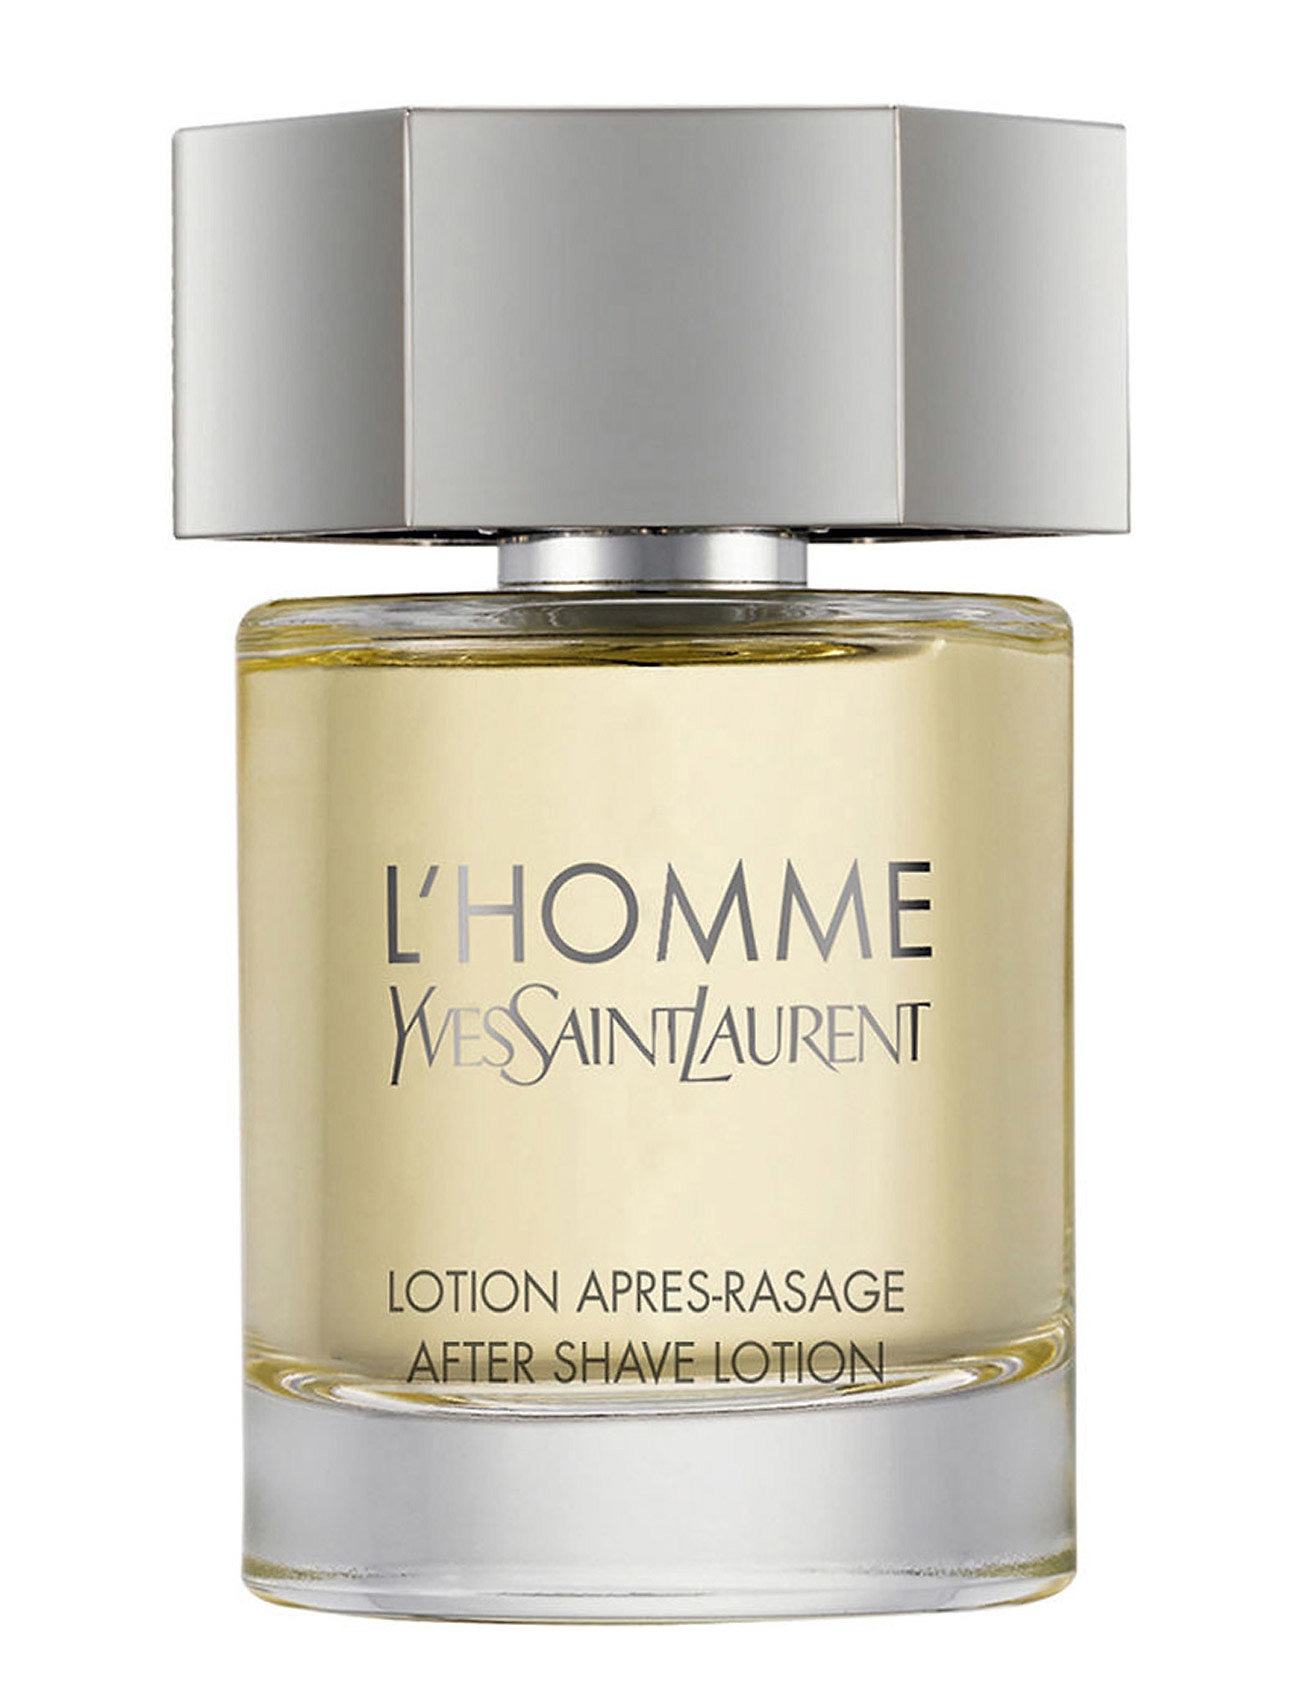 yves saint laurent L'homme after shave lotion 100 ml. på boozt.com dk